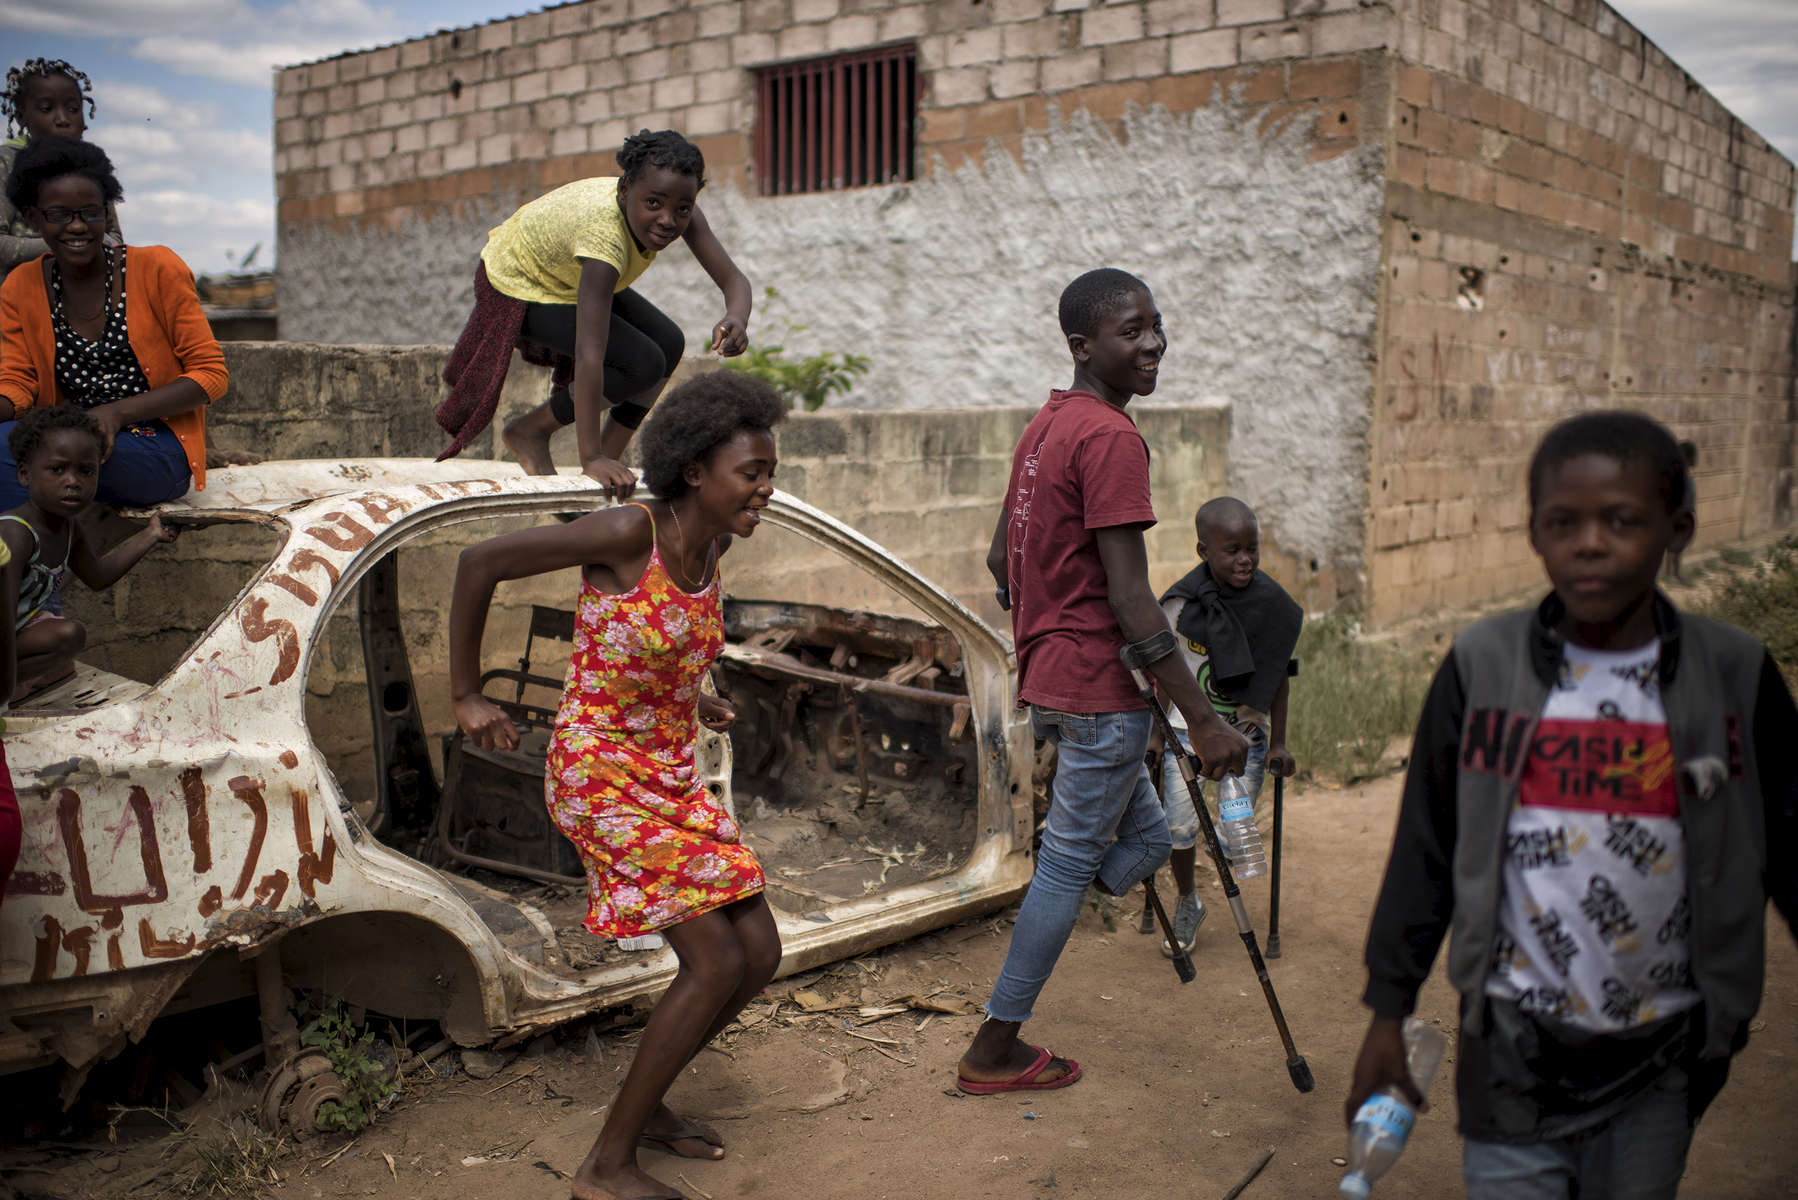 May 10, 2018: HUAMBO, ANGOLA -Fourteen year-old Jeremy clowns around with some friends outside the yard his family's home in Huambo. He is the youngest of a group of boys who were seriously wounded while playing with a mortar round in December 2016 sit with older men, who are also mine accident victims at the rehabilitation center of a hospital in Huambo. Twelve year-old Antonio (patterned shirt), fourteen year-old Jeremy (red shirt), ten year-old Mario (white shirt) and eight year-old Manuel (black jacket) survived the accident, while their friend Frederico, ten, was killed. While there is an enormous need for prosthetic limbs in Angola, a country with an enormous number of mines laid during the civil war, they are unable to afford to import the materials necessary to make them.